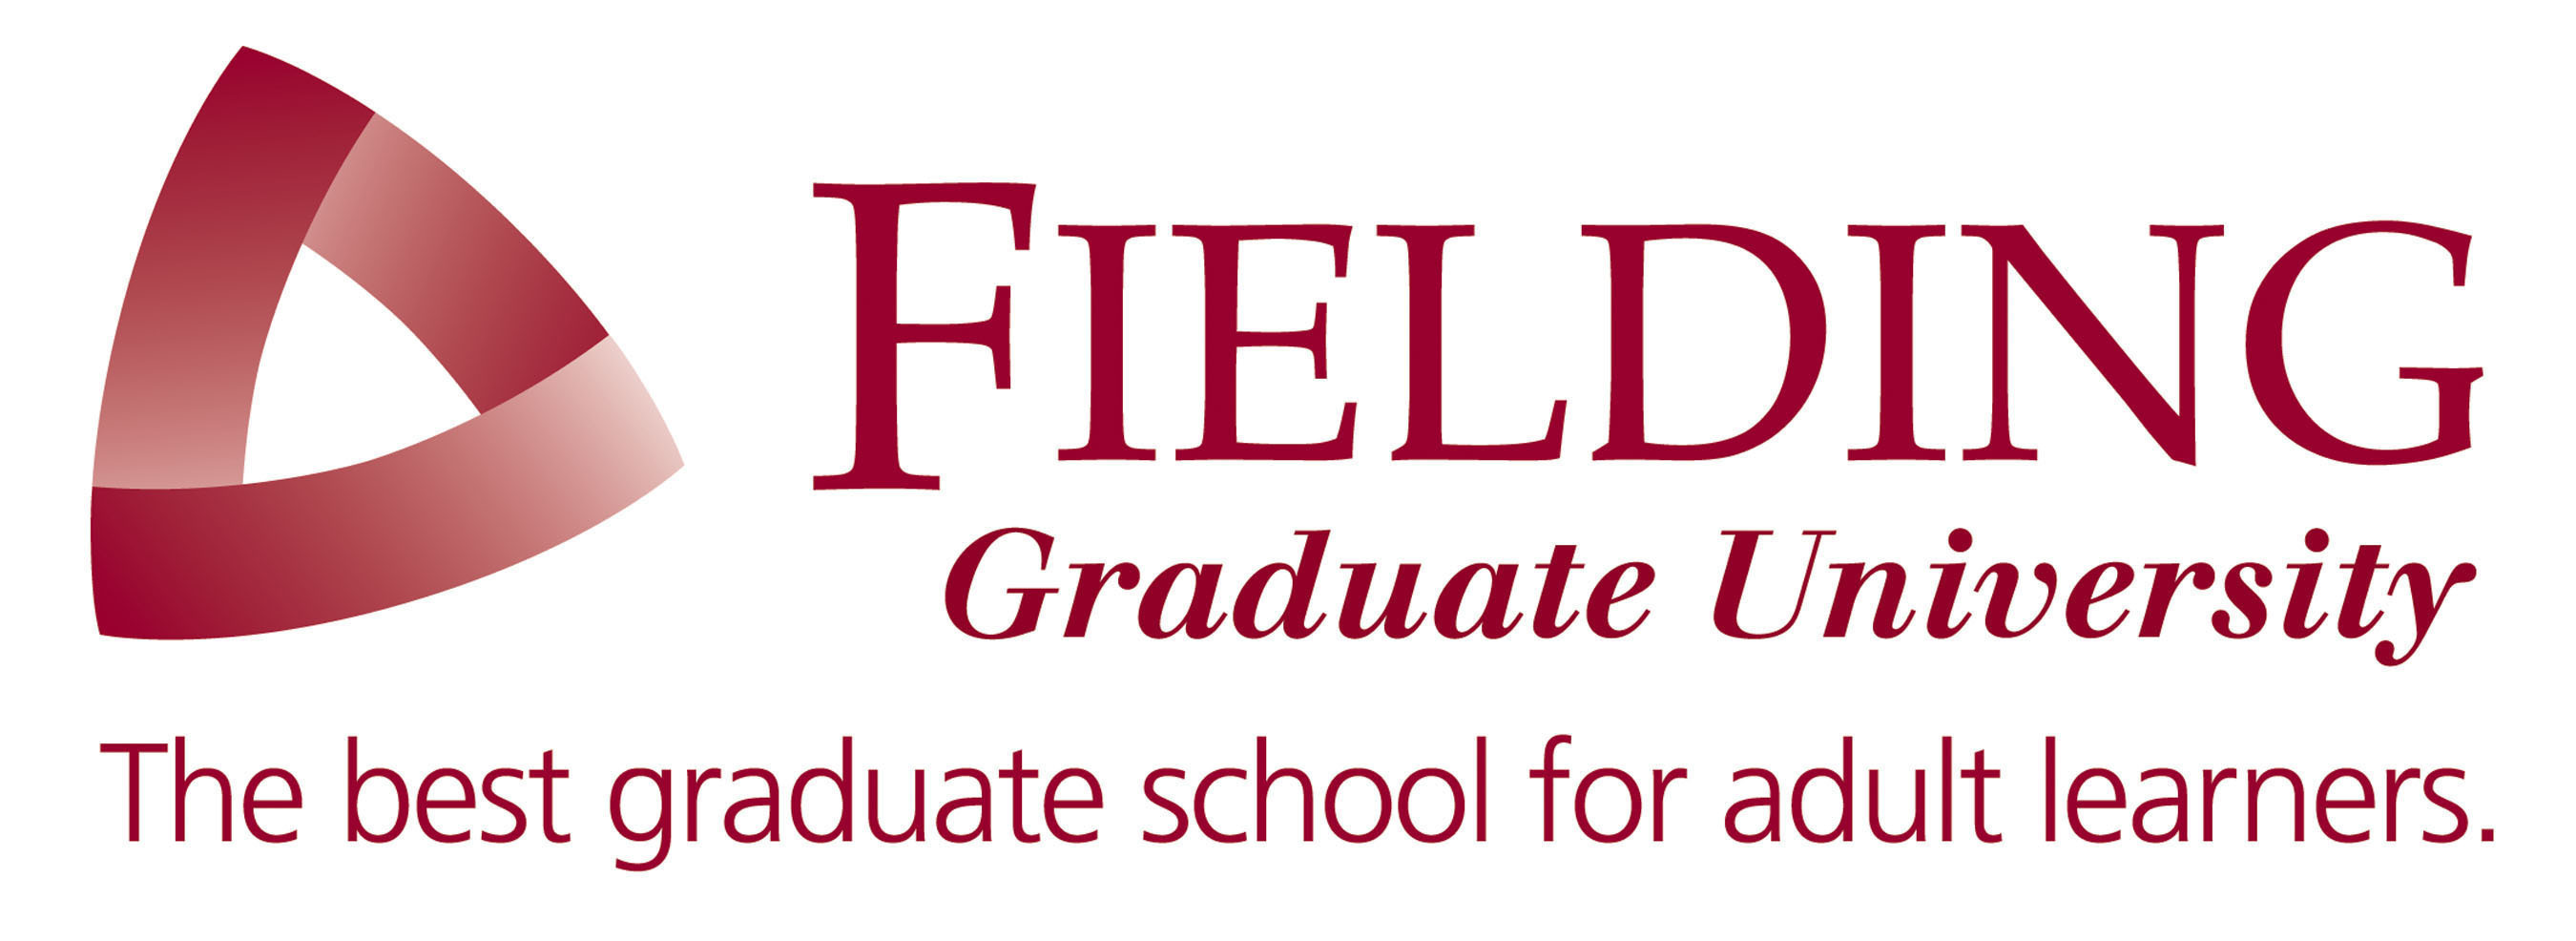 Fielding Graduate University is an accredited nonprofit leader in blended graduate education, combining face-to-face and online learning. Our curriculum offers quality degrees and courses for professionals living and working anywhere in the world. Fielding's faculty members represent a breadth of scholarship and practice in the fields of educational leadership, human and organizational development, and clinical and media psychology. Maintaining Fielding's reputation for quality programs faculty are mentors and guides to self-directed students who use their skills to become powerful, and socially-responsible leaders in their communities, workplaces, and society. (PRNewsFoto/Fielding Graduate University)